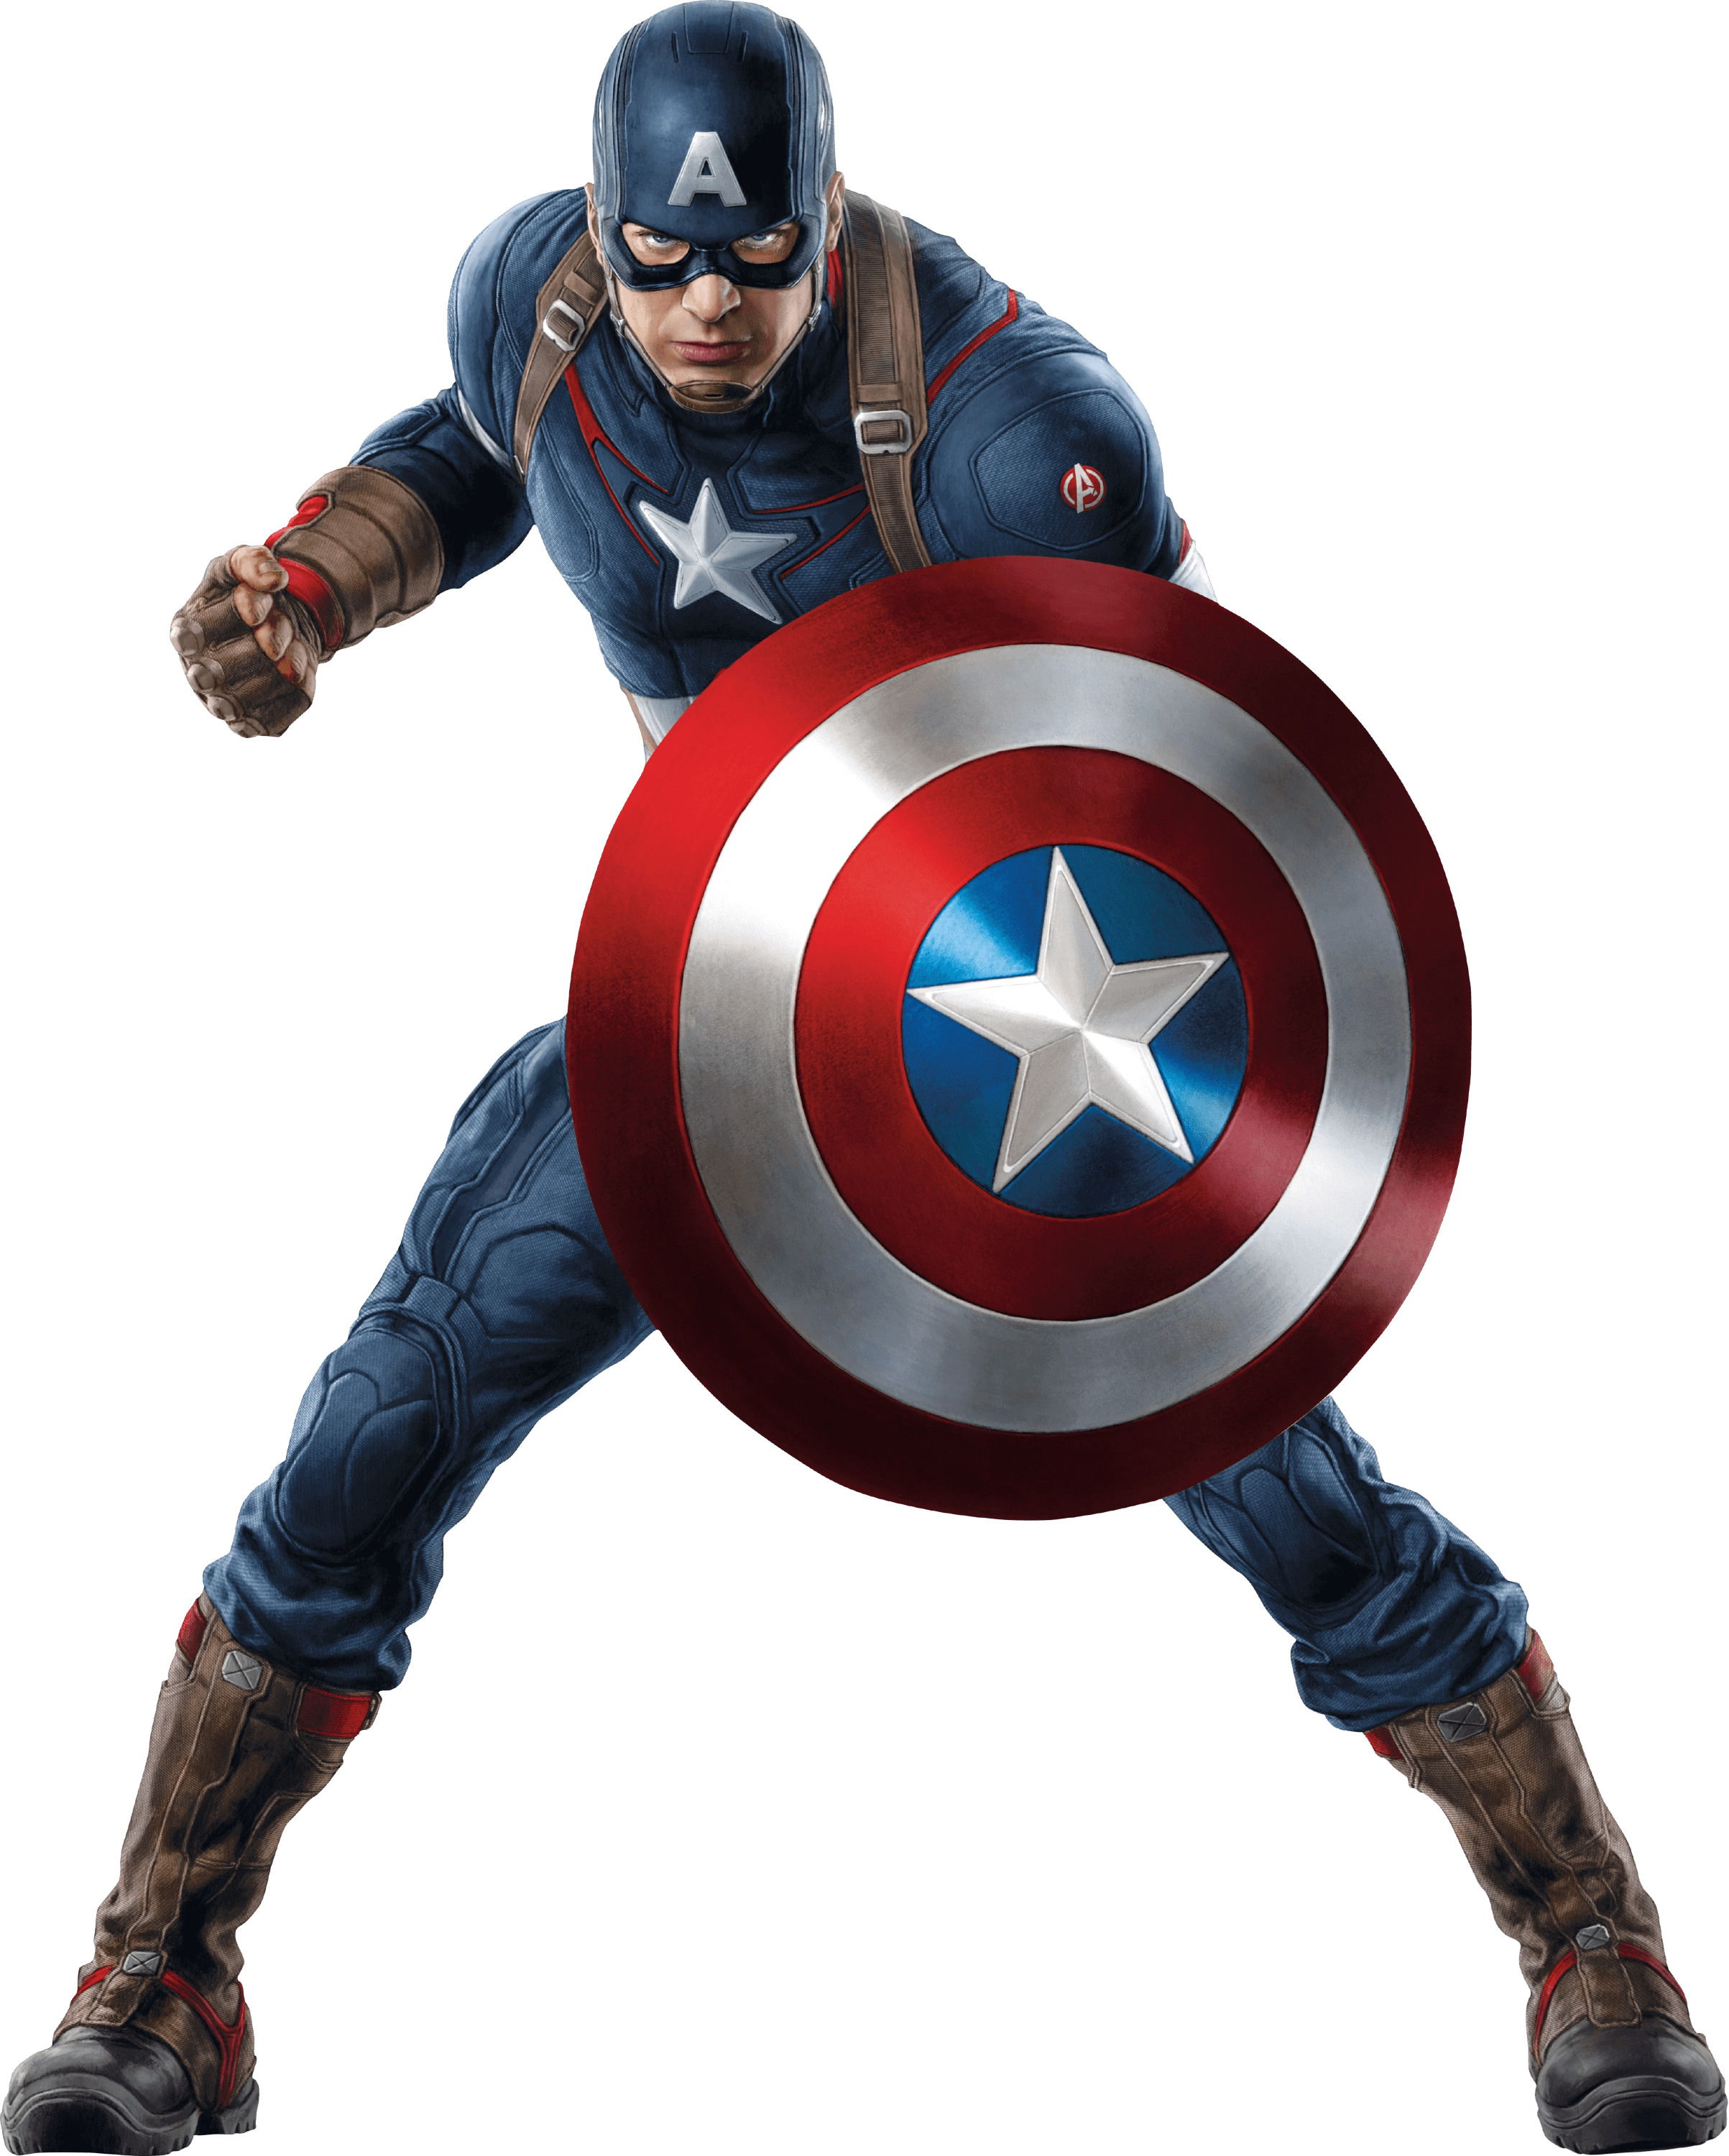 Image   Captain America AOU Render png   Disney Wiki   FANDOM     Captain America AOU Render png